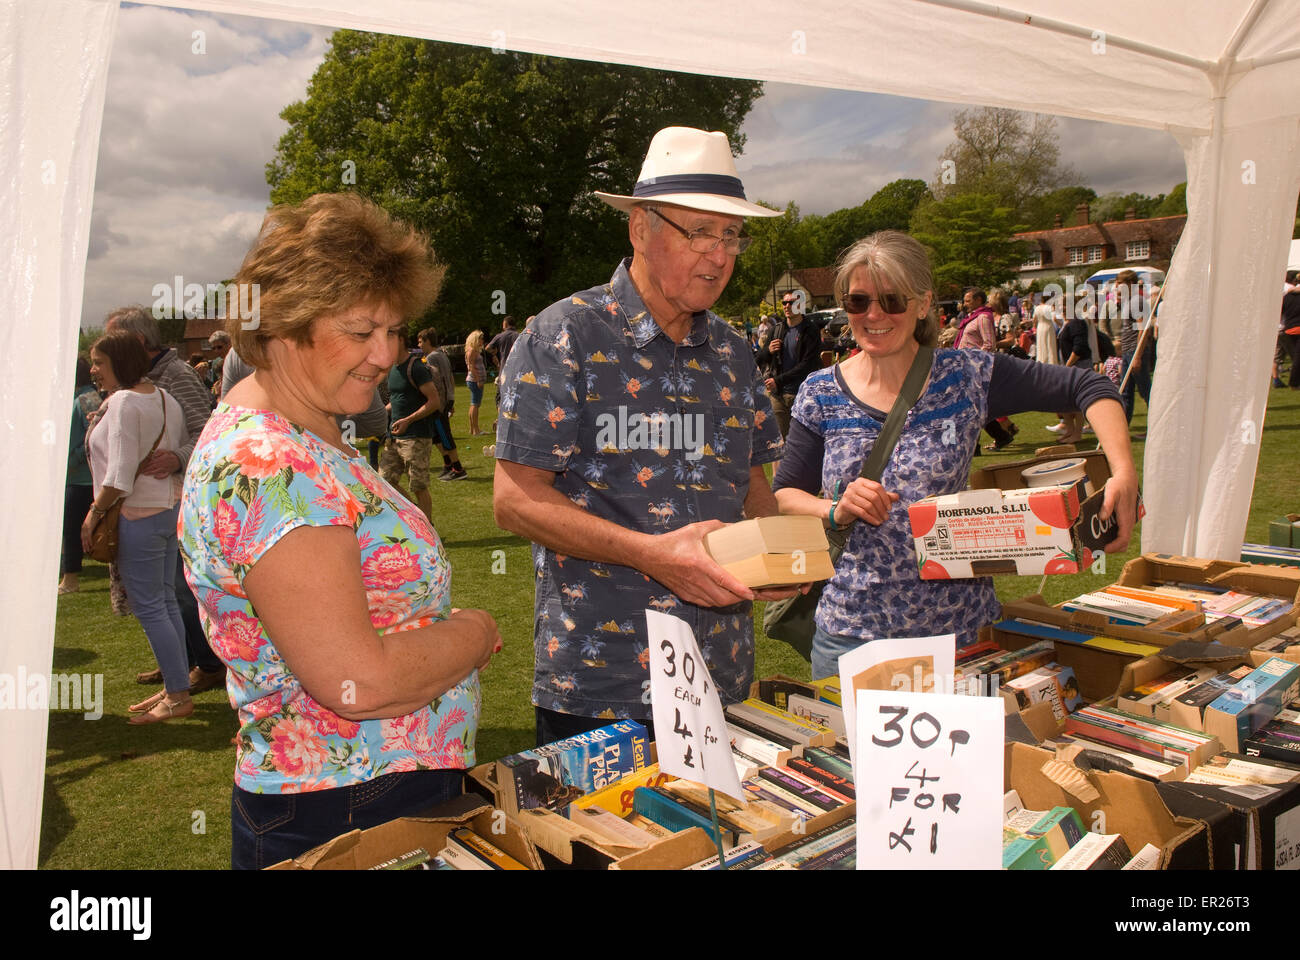 People browsing a book stall at Fernhurst Revels annual fair, Fernhurst, West Sussex, UK. - Stock Image